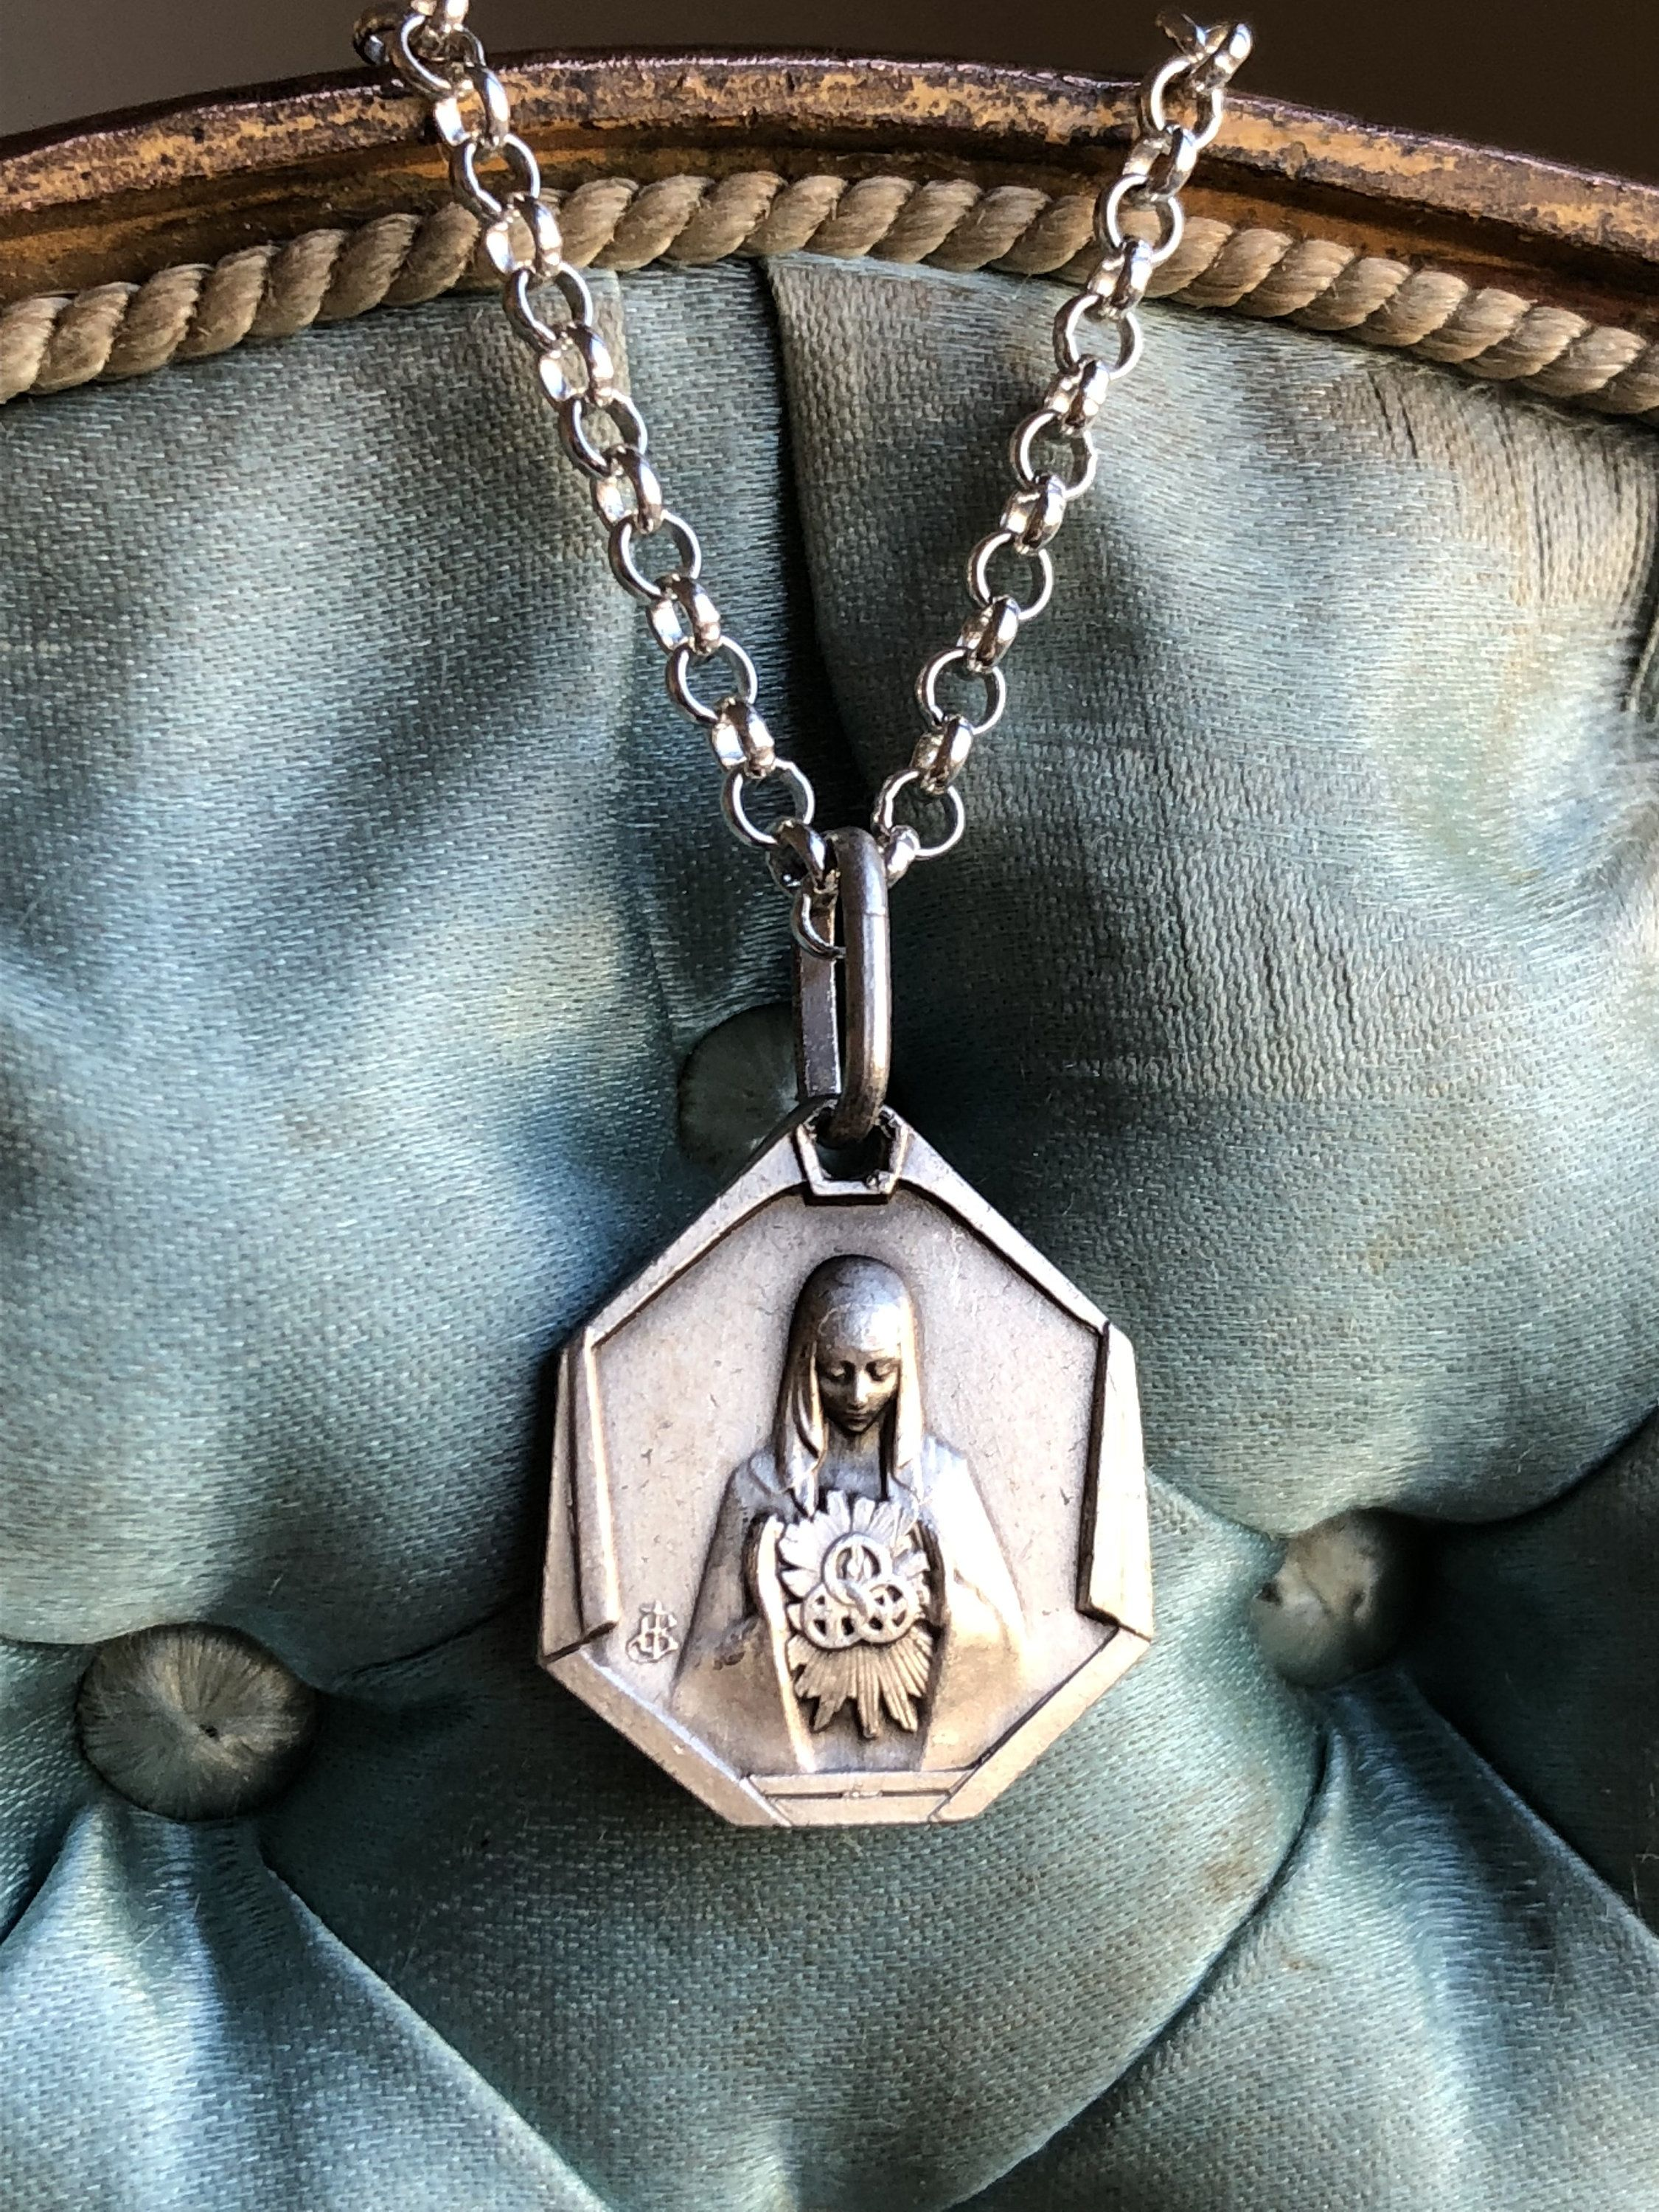 Blessed Mother Virgin Mary Medal Necklace Vintage French Silver Catholic Jewelry First Communion Gift Amulet Talisman Religious By Sacredbarcelona